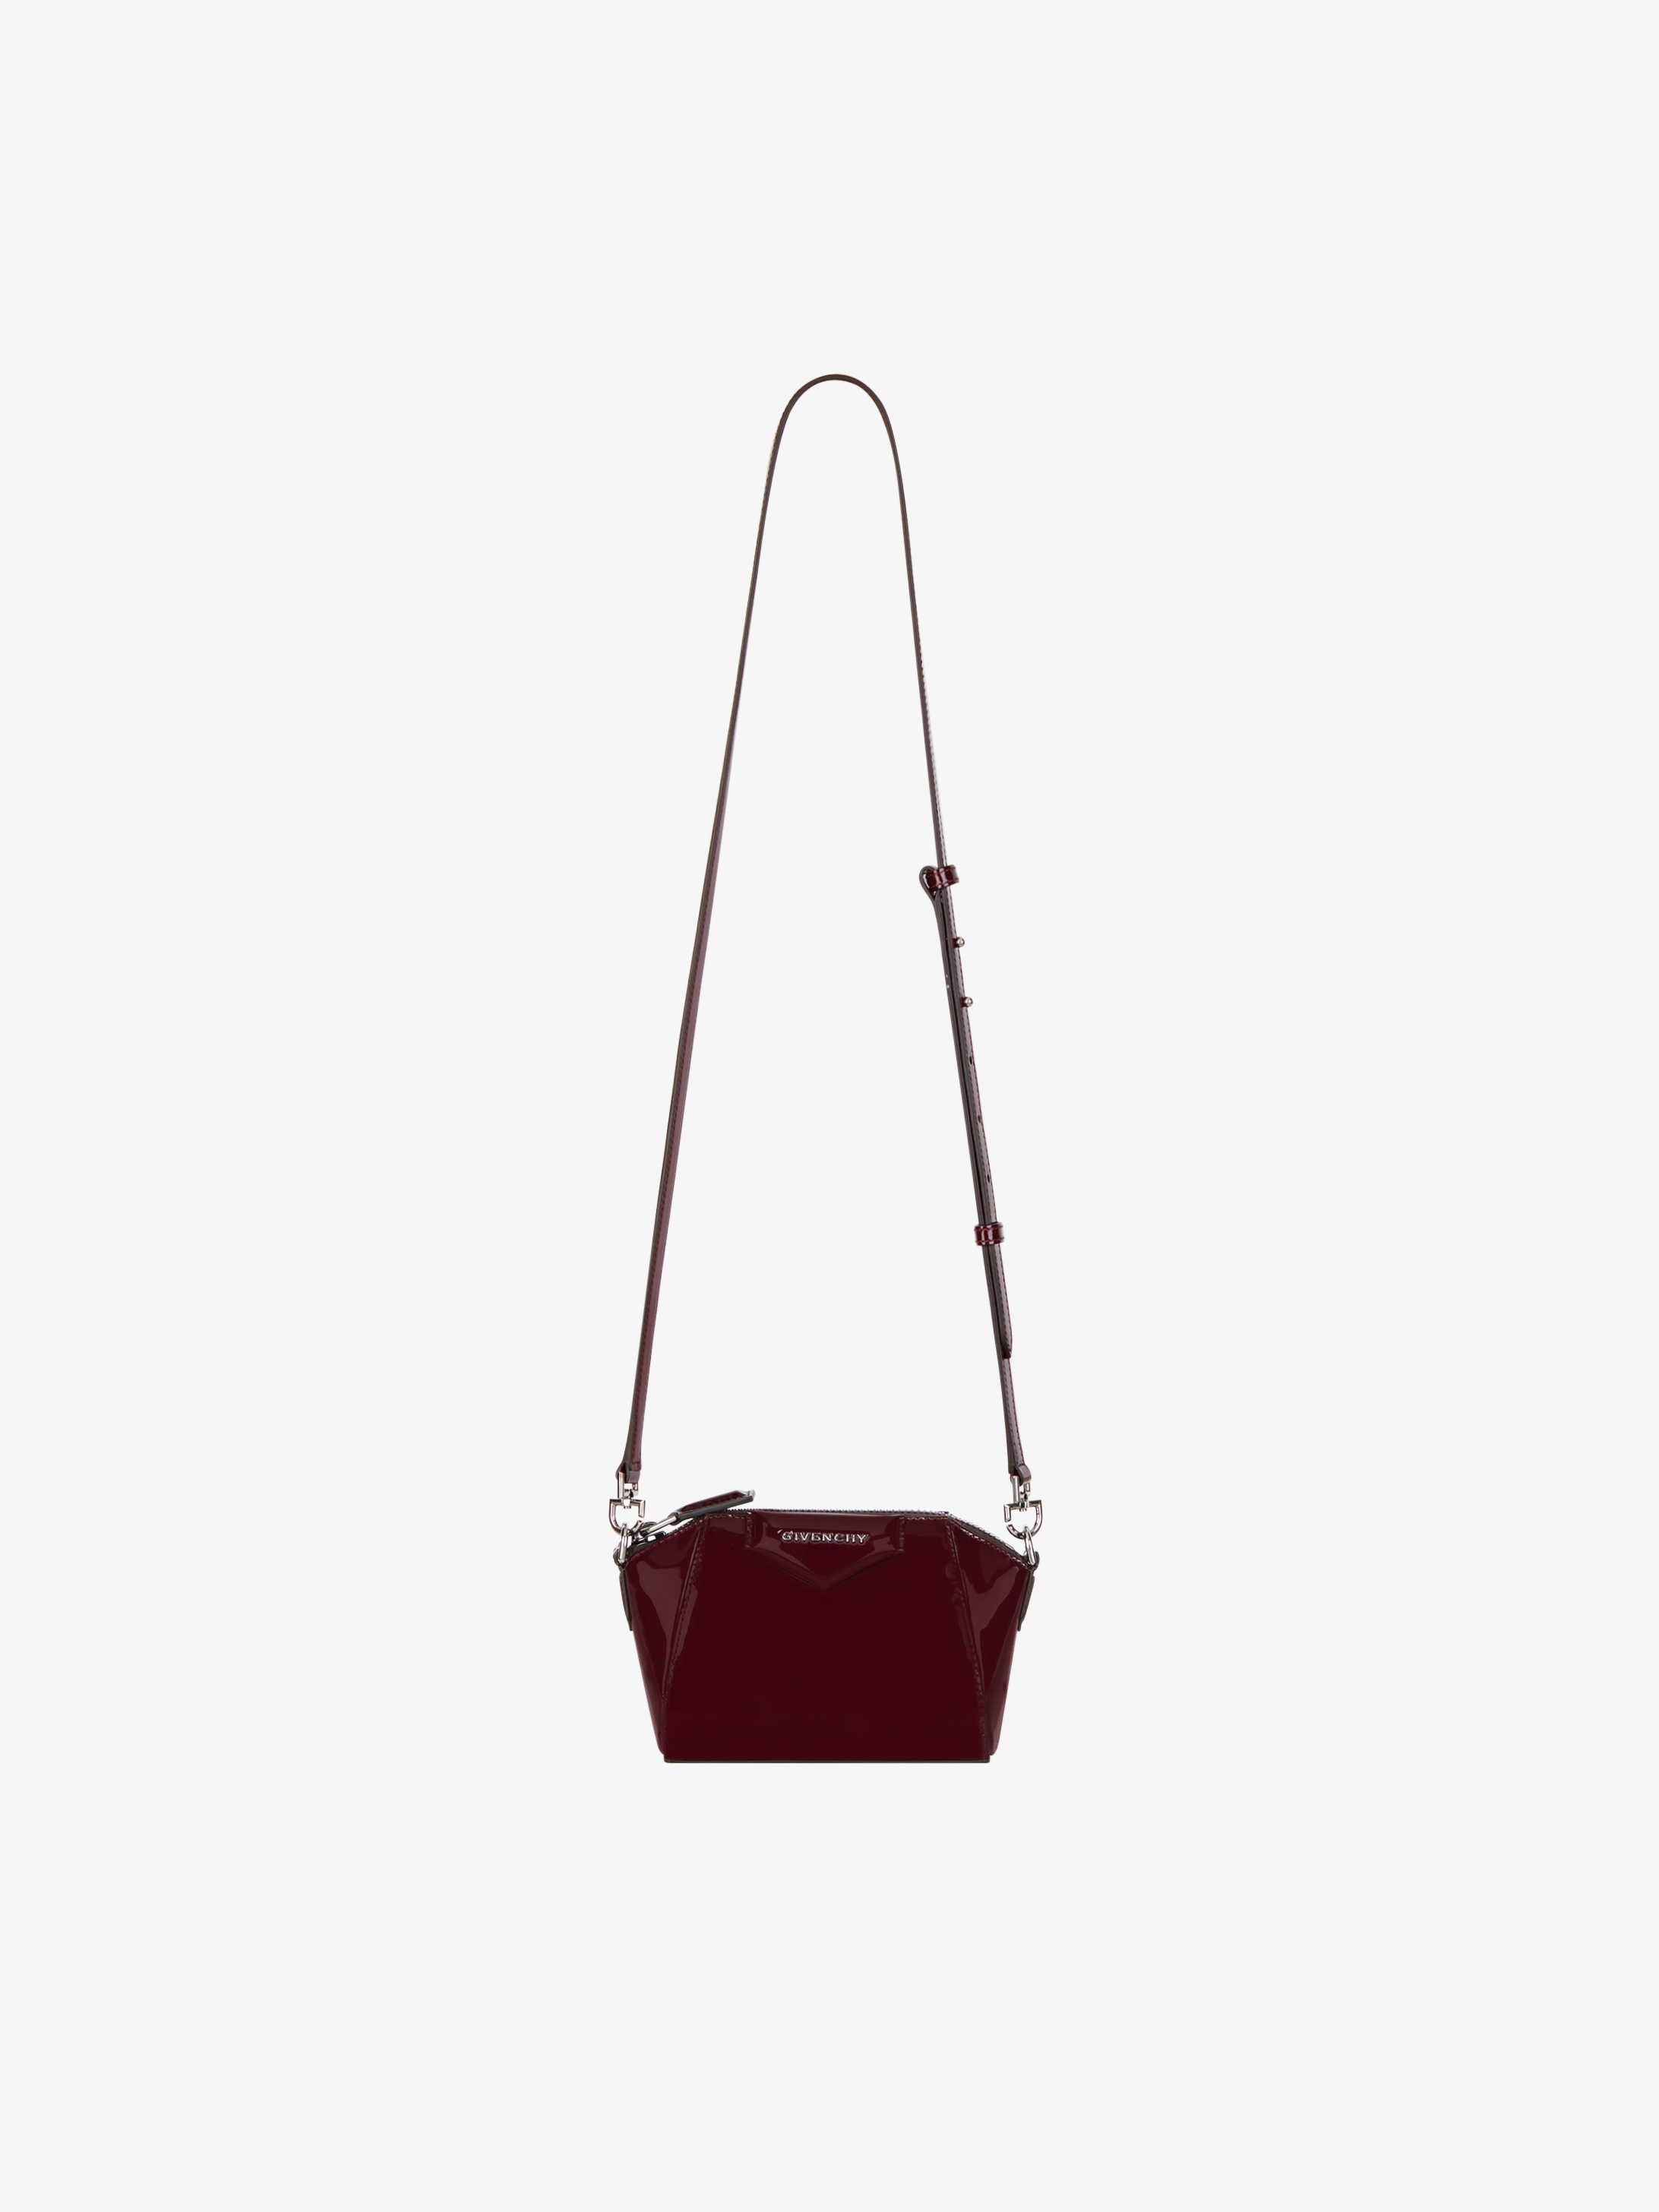 Nano Antigona bag in varnished leather